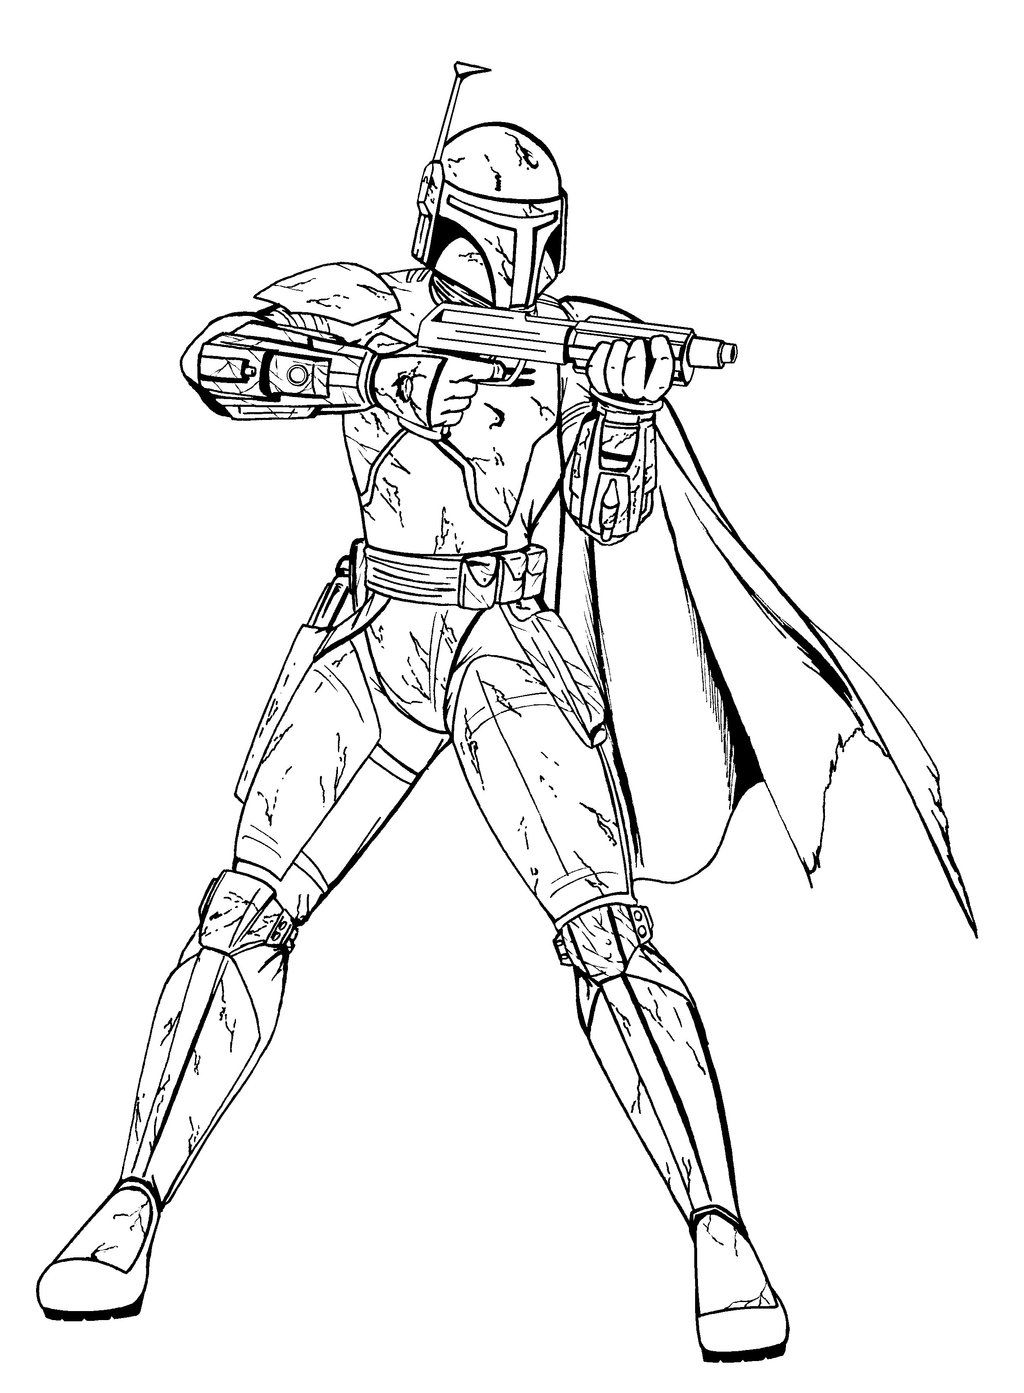 Online star wars coloring pages - Star Wars Coloring Pages 2014 Dr Odd